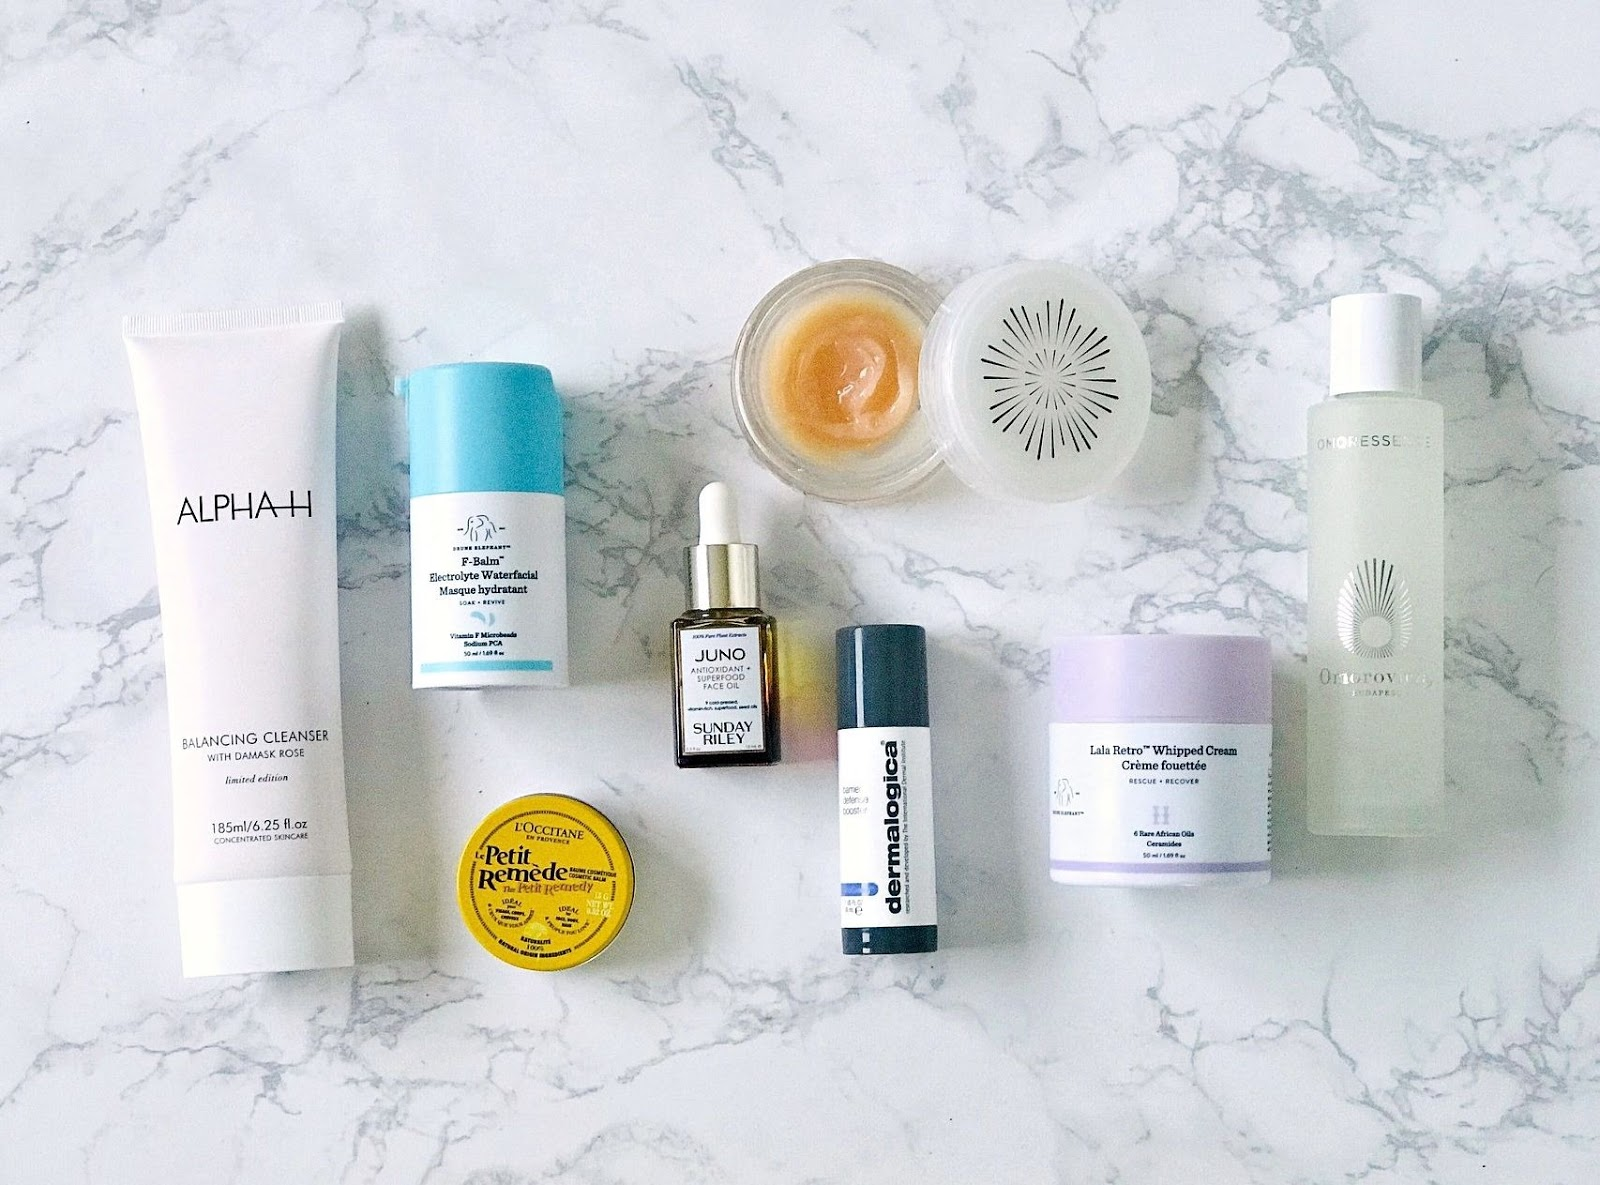 The winter skincare kit for dry skin